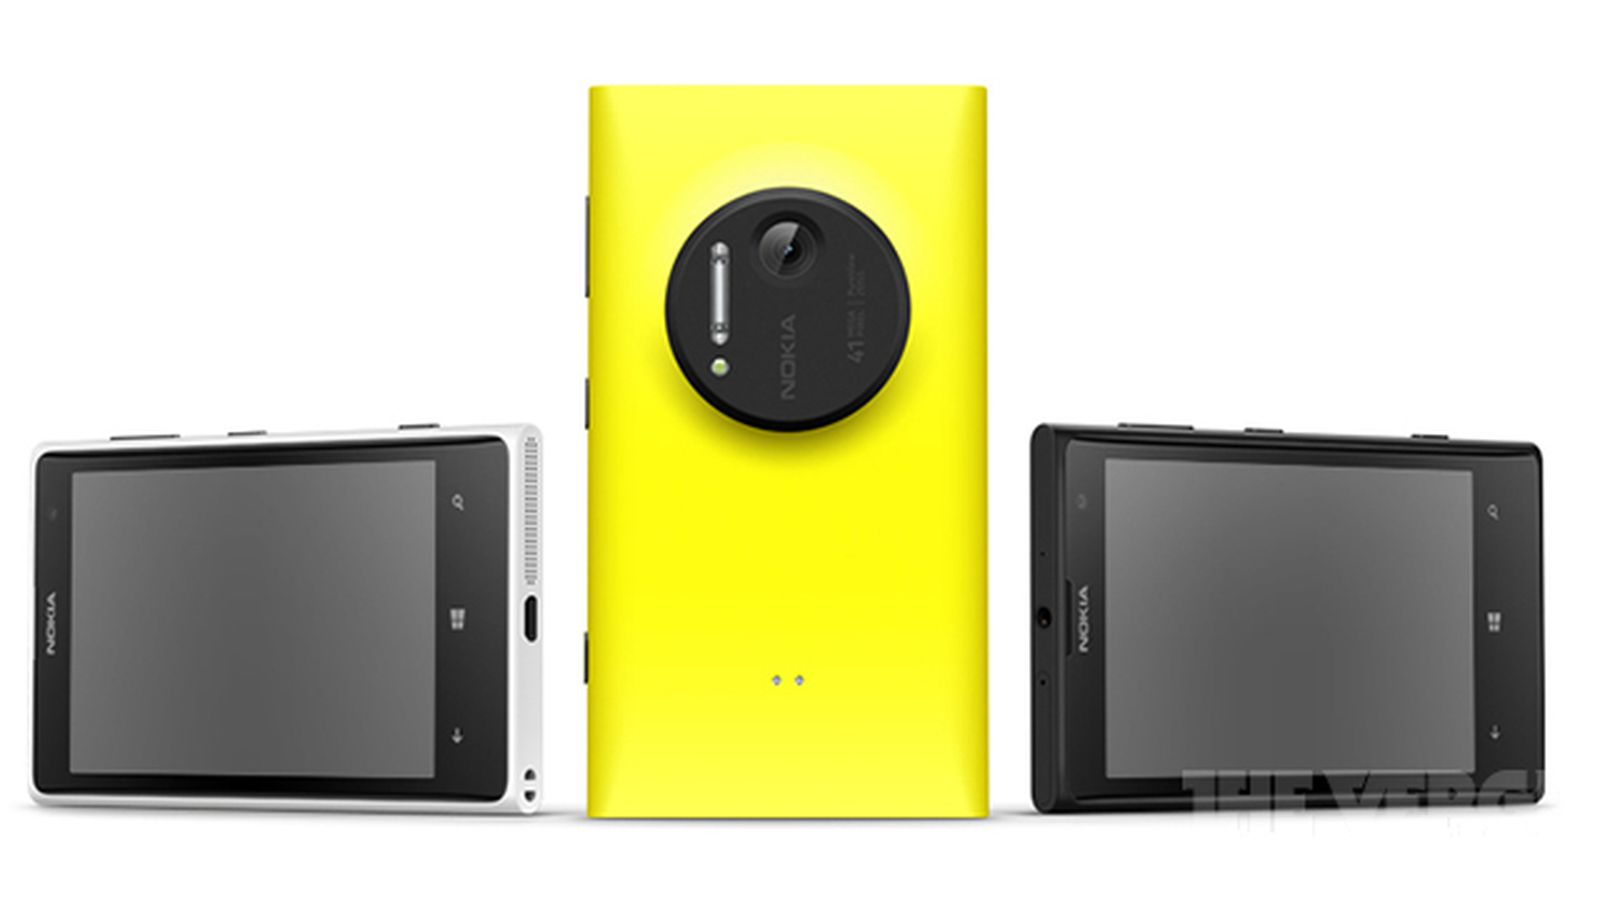 Nokia lumia 1020 review big camera big price big win - This Is Nokia S Lumia 1020 A 41 Megapixel Windows Phone Camera Updated The Verge